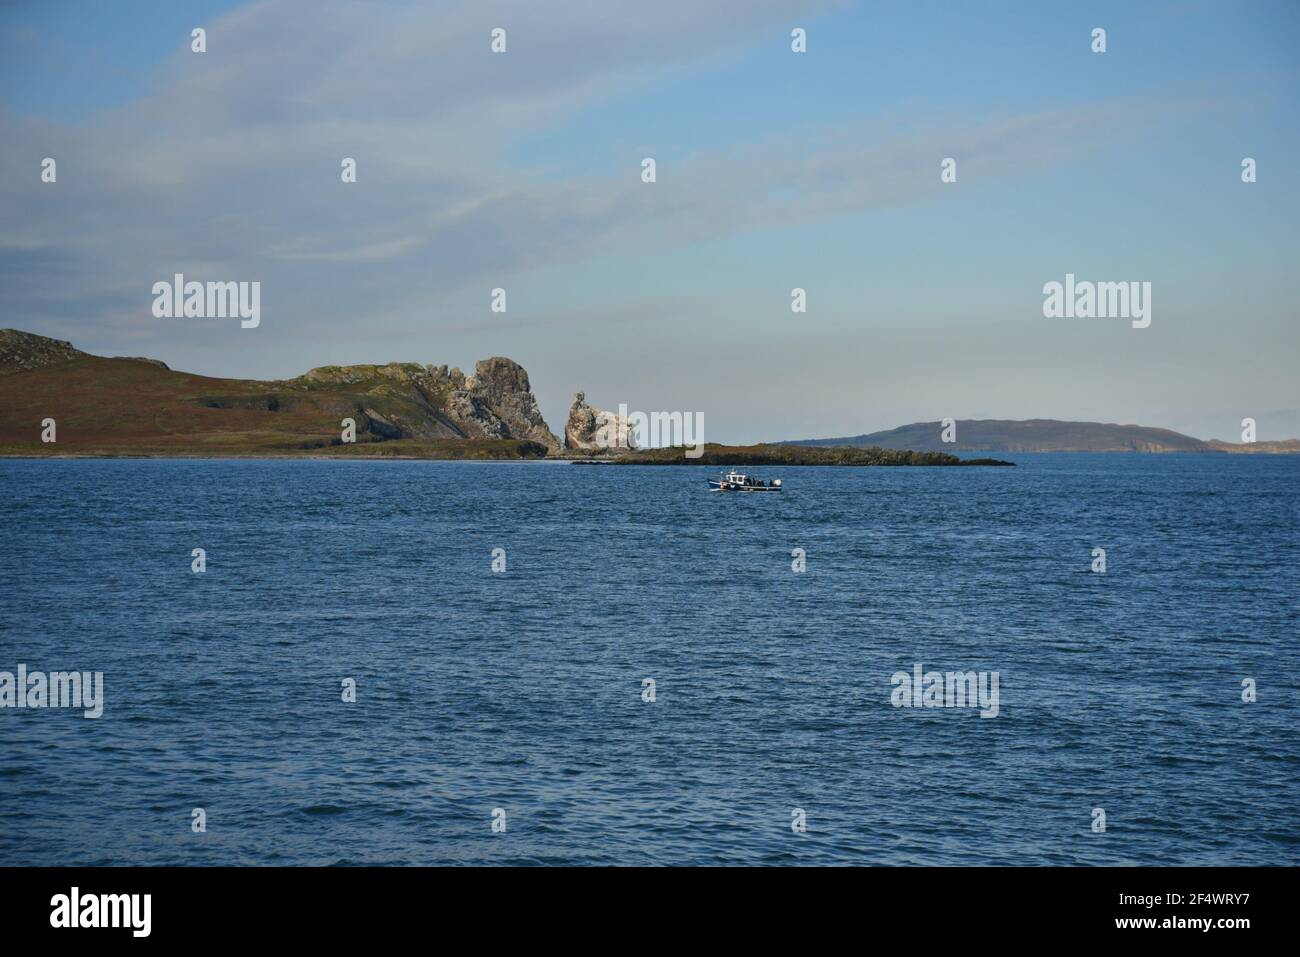 Landscape with scenic view of Ireland's Eye island as seen from the Port of Howth in County Leinster Dublin Ireland. Stock Photo